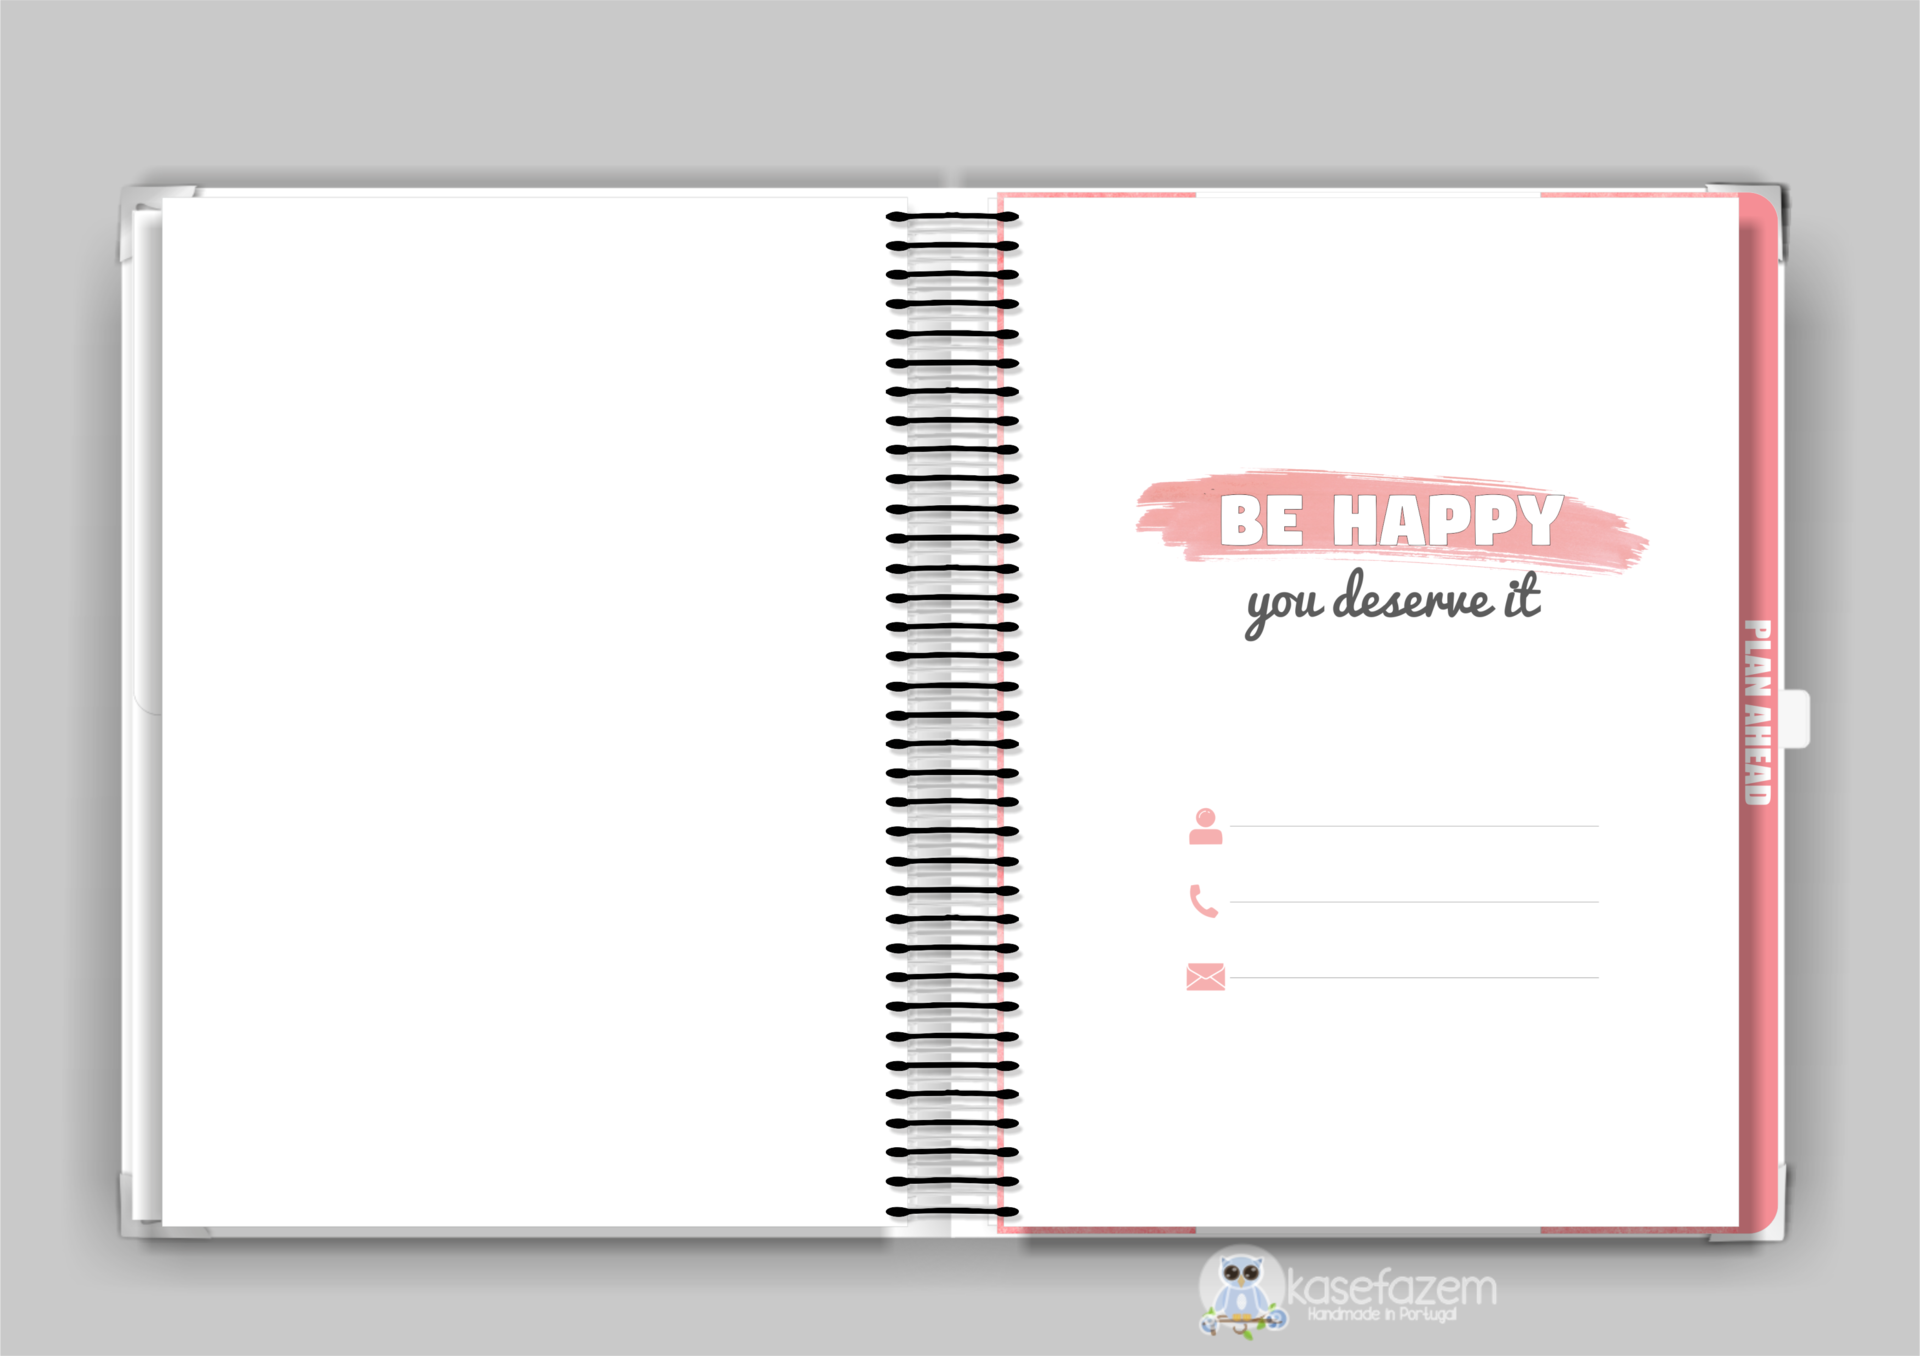 kasefazem personalized planner personal information